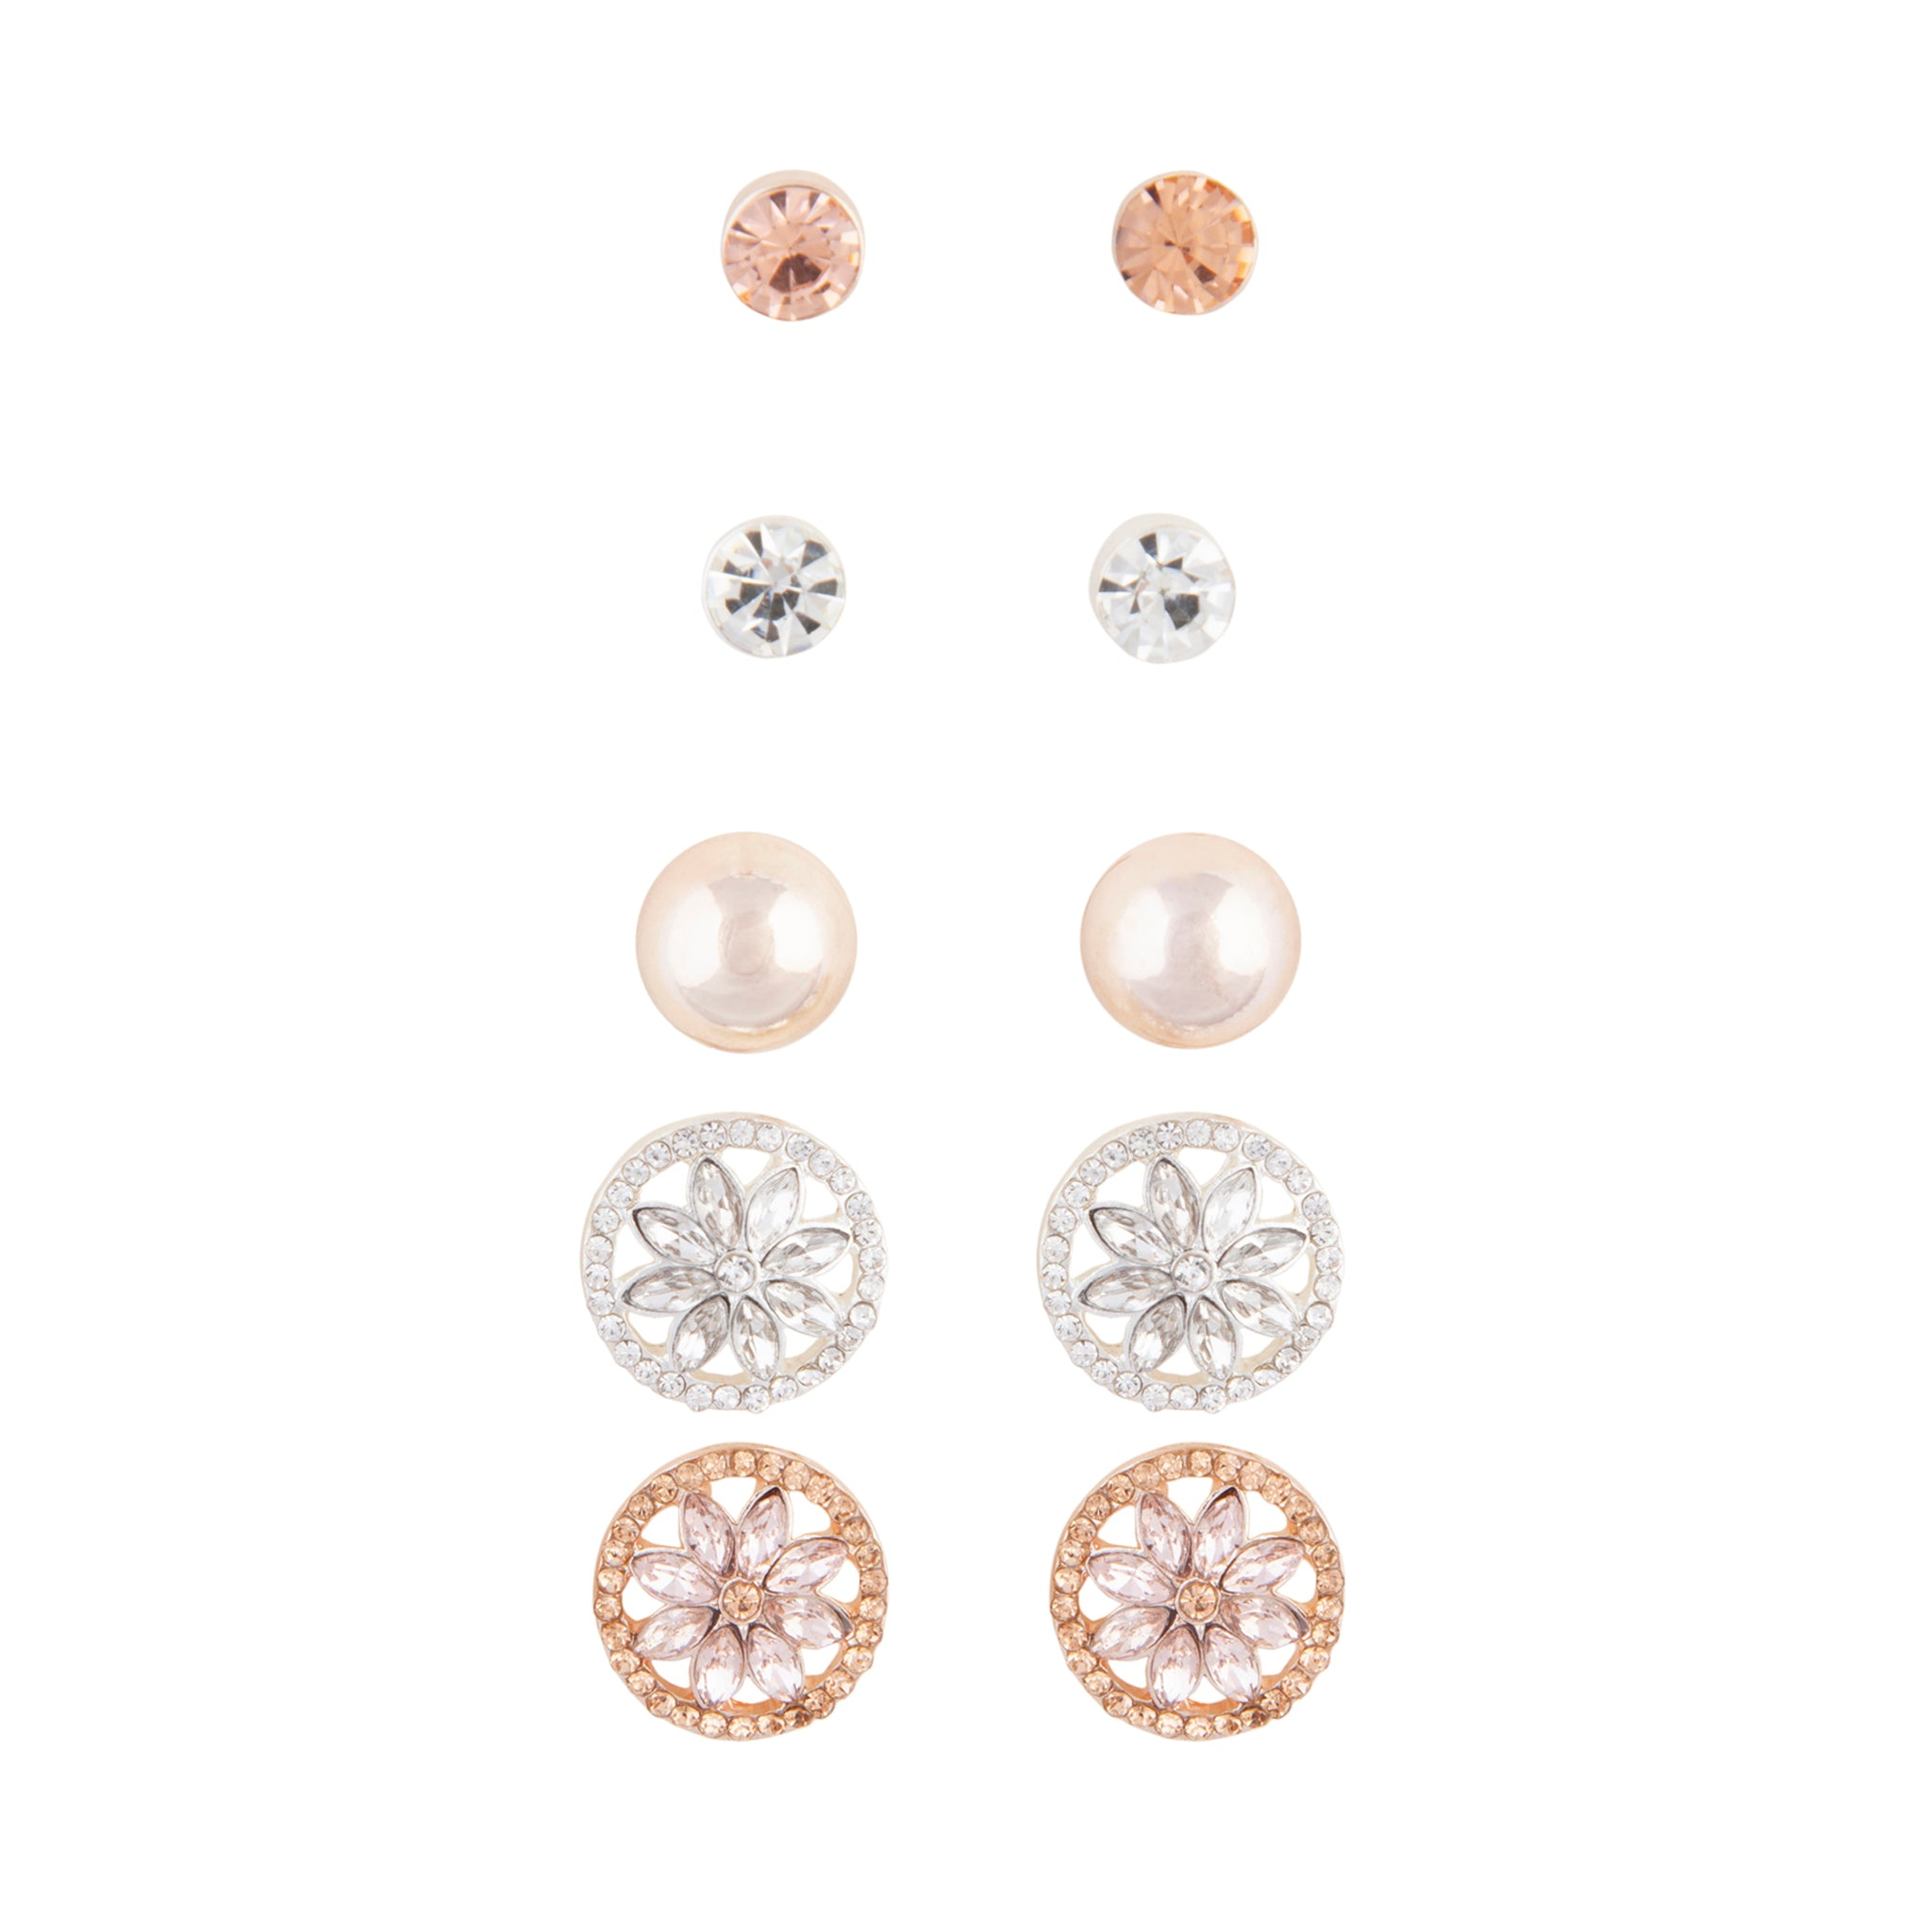 Rose Gold Decorative Diamante 5 Pack Clip On Earrings